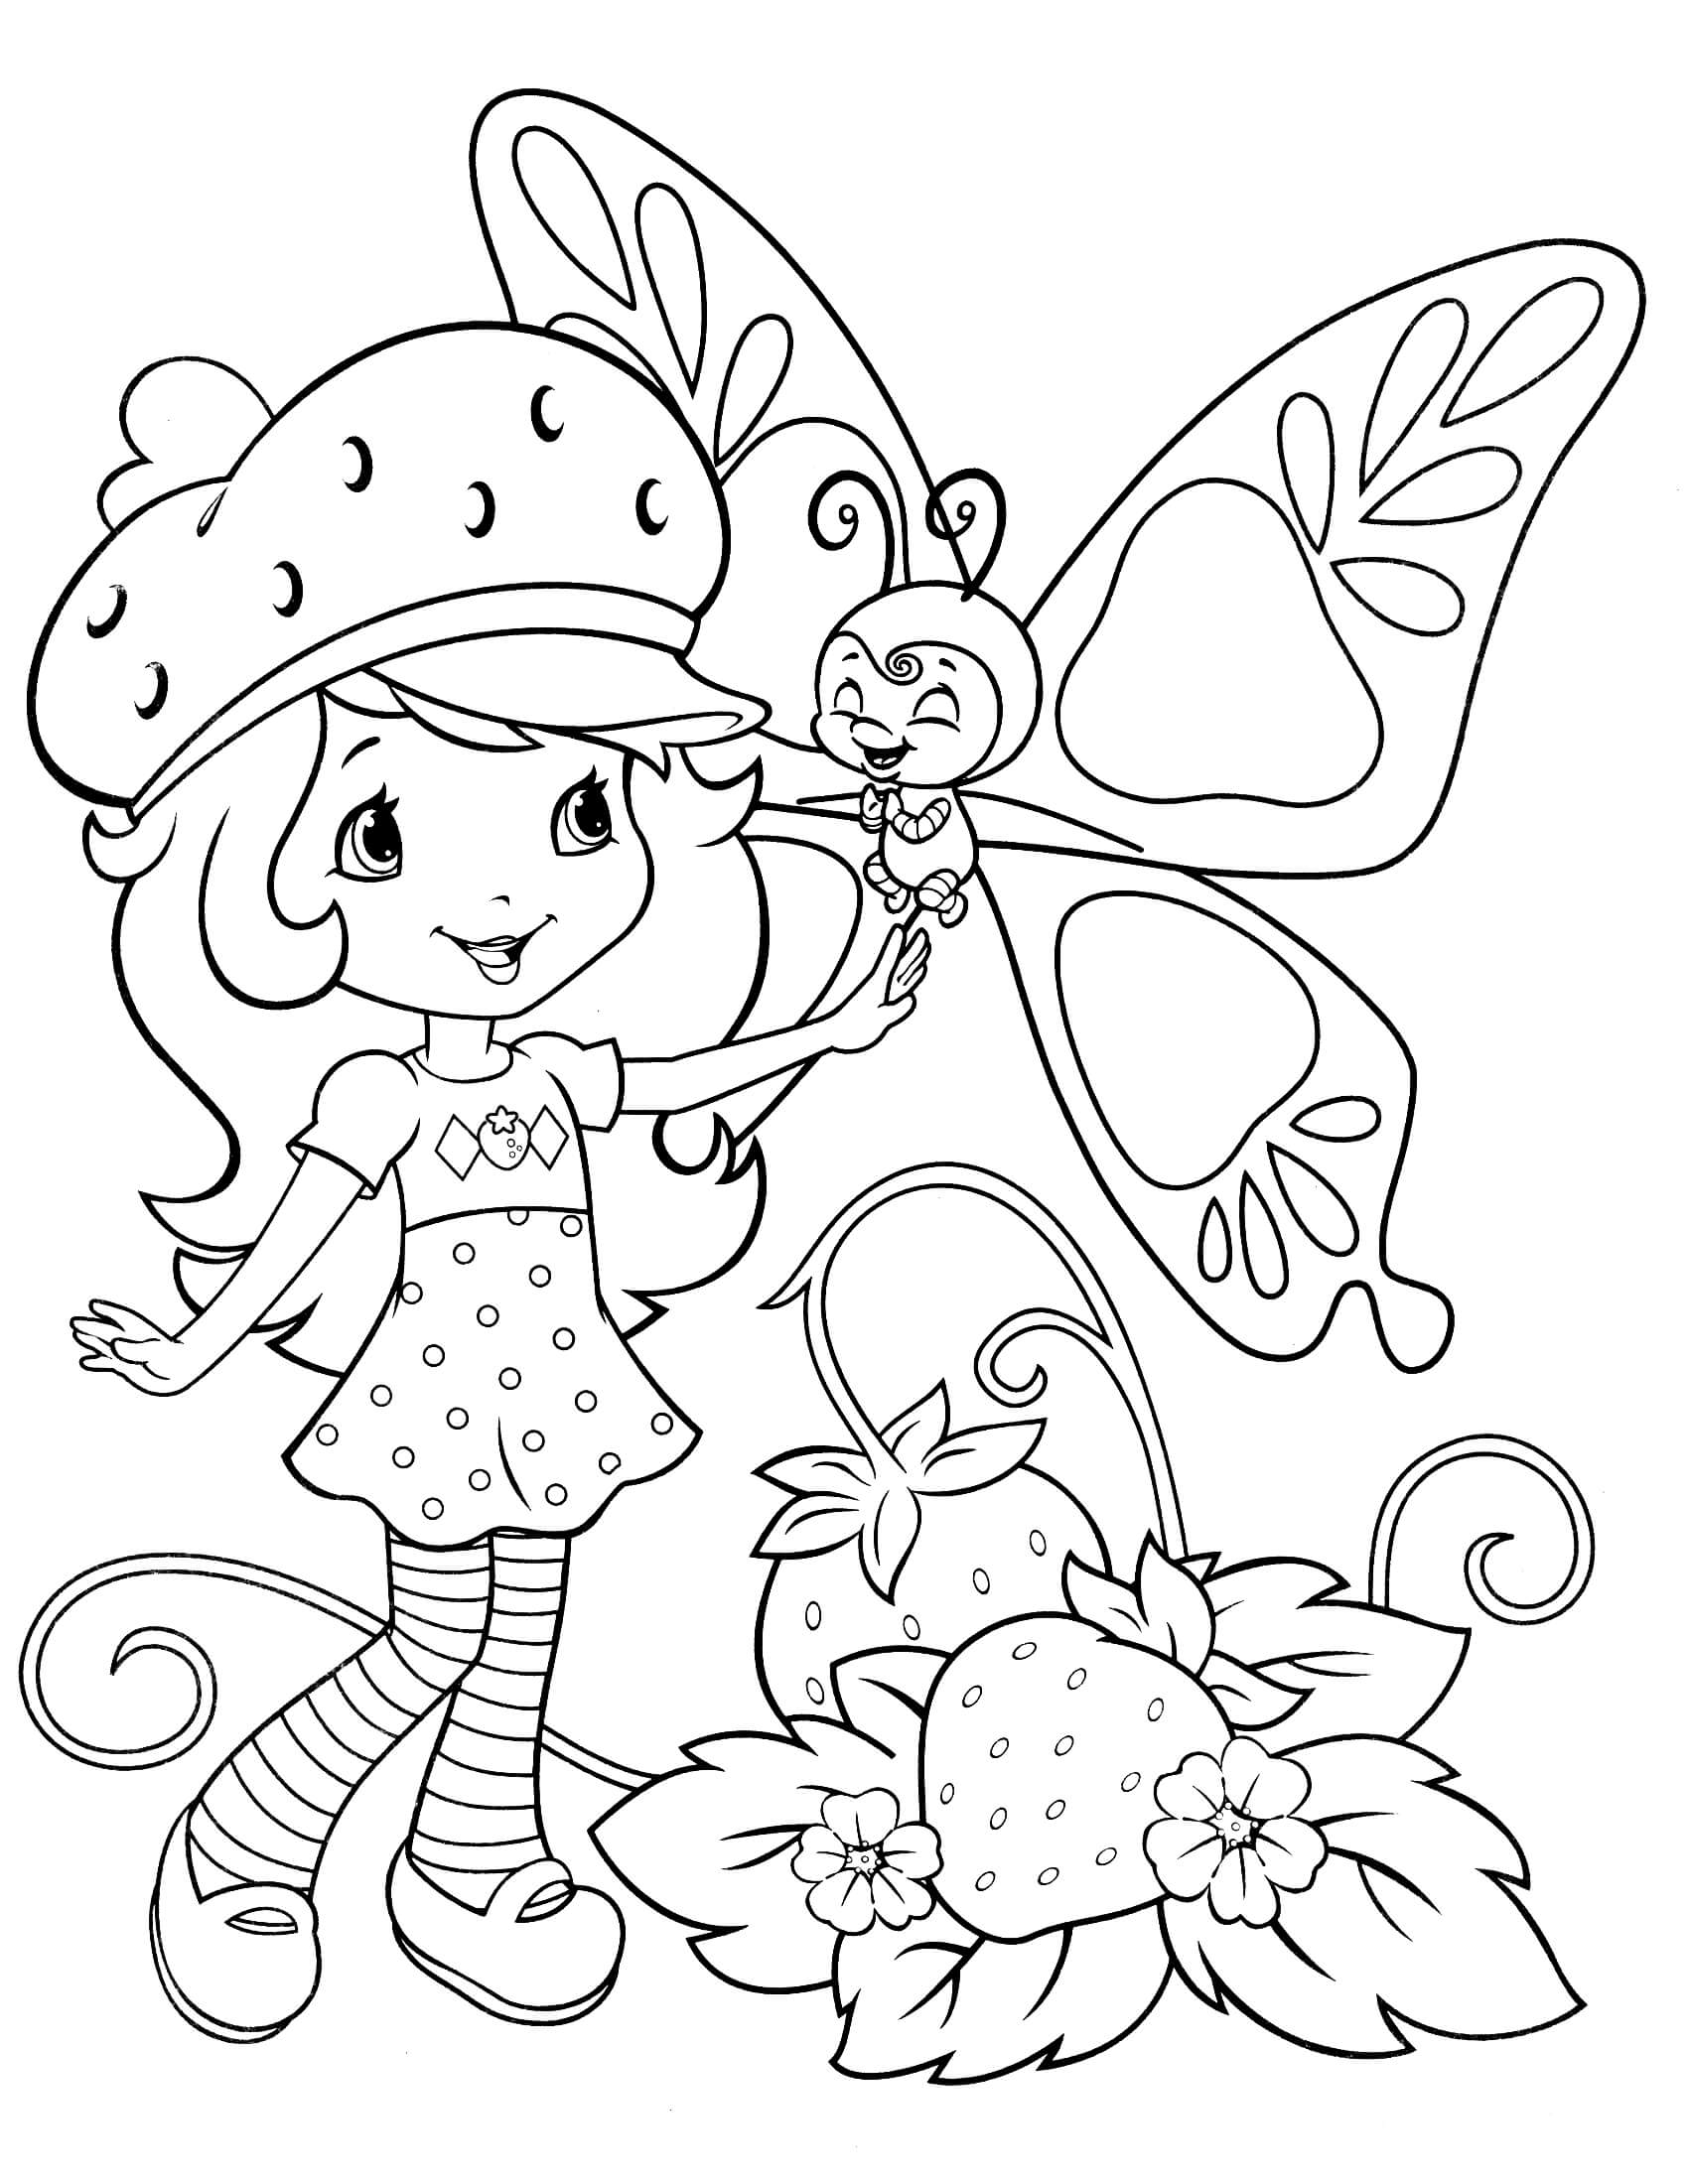 strawberry shortcake drawing pages strawberry shortcake coloring pages free printable strawberry shortcake drawing pages